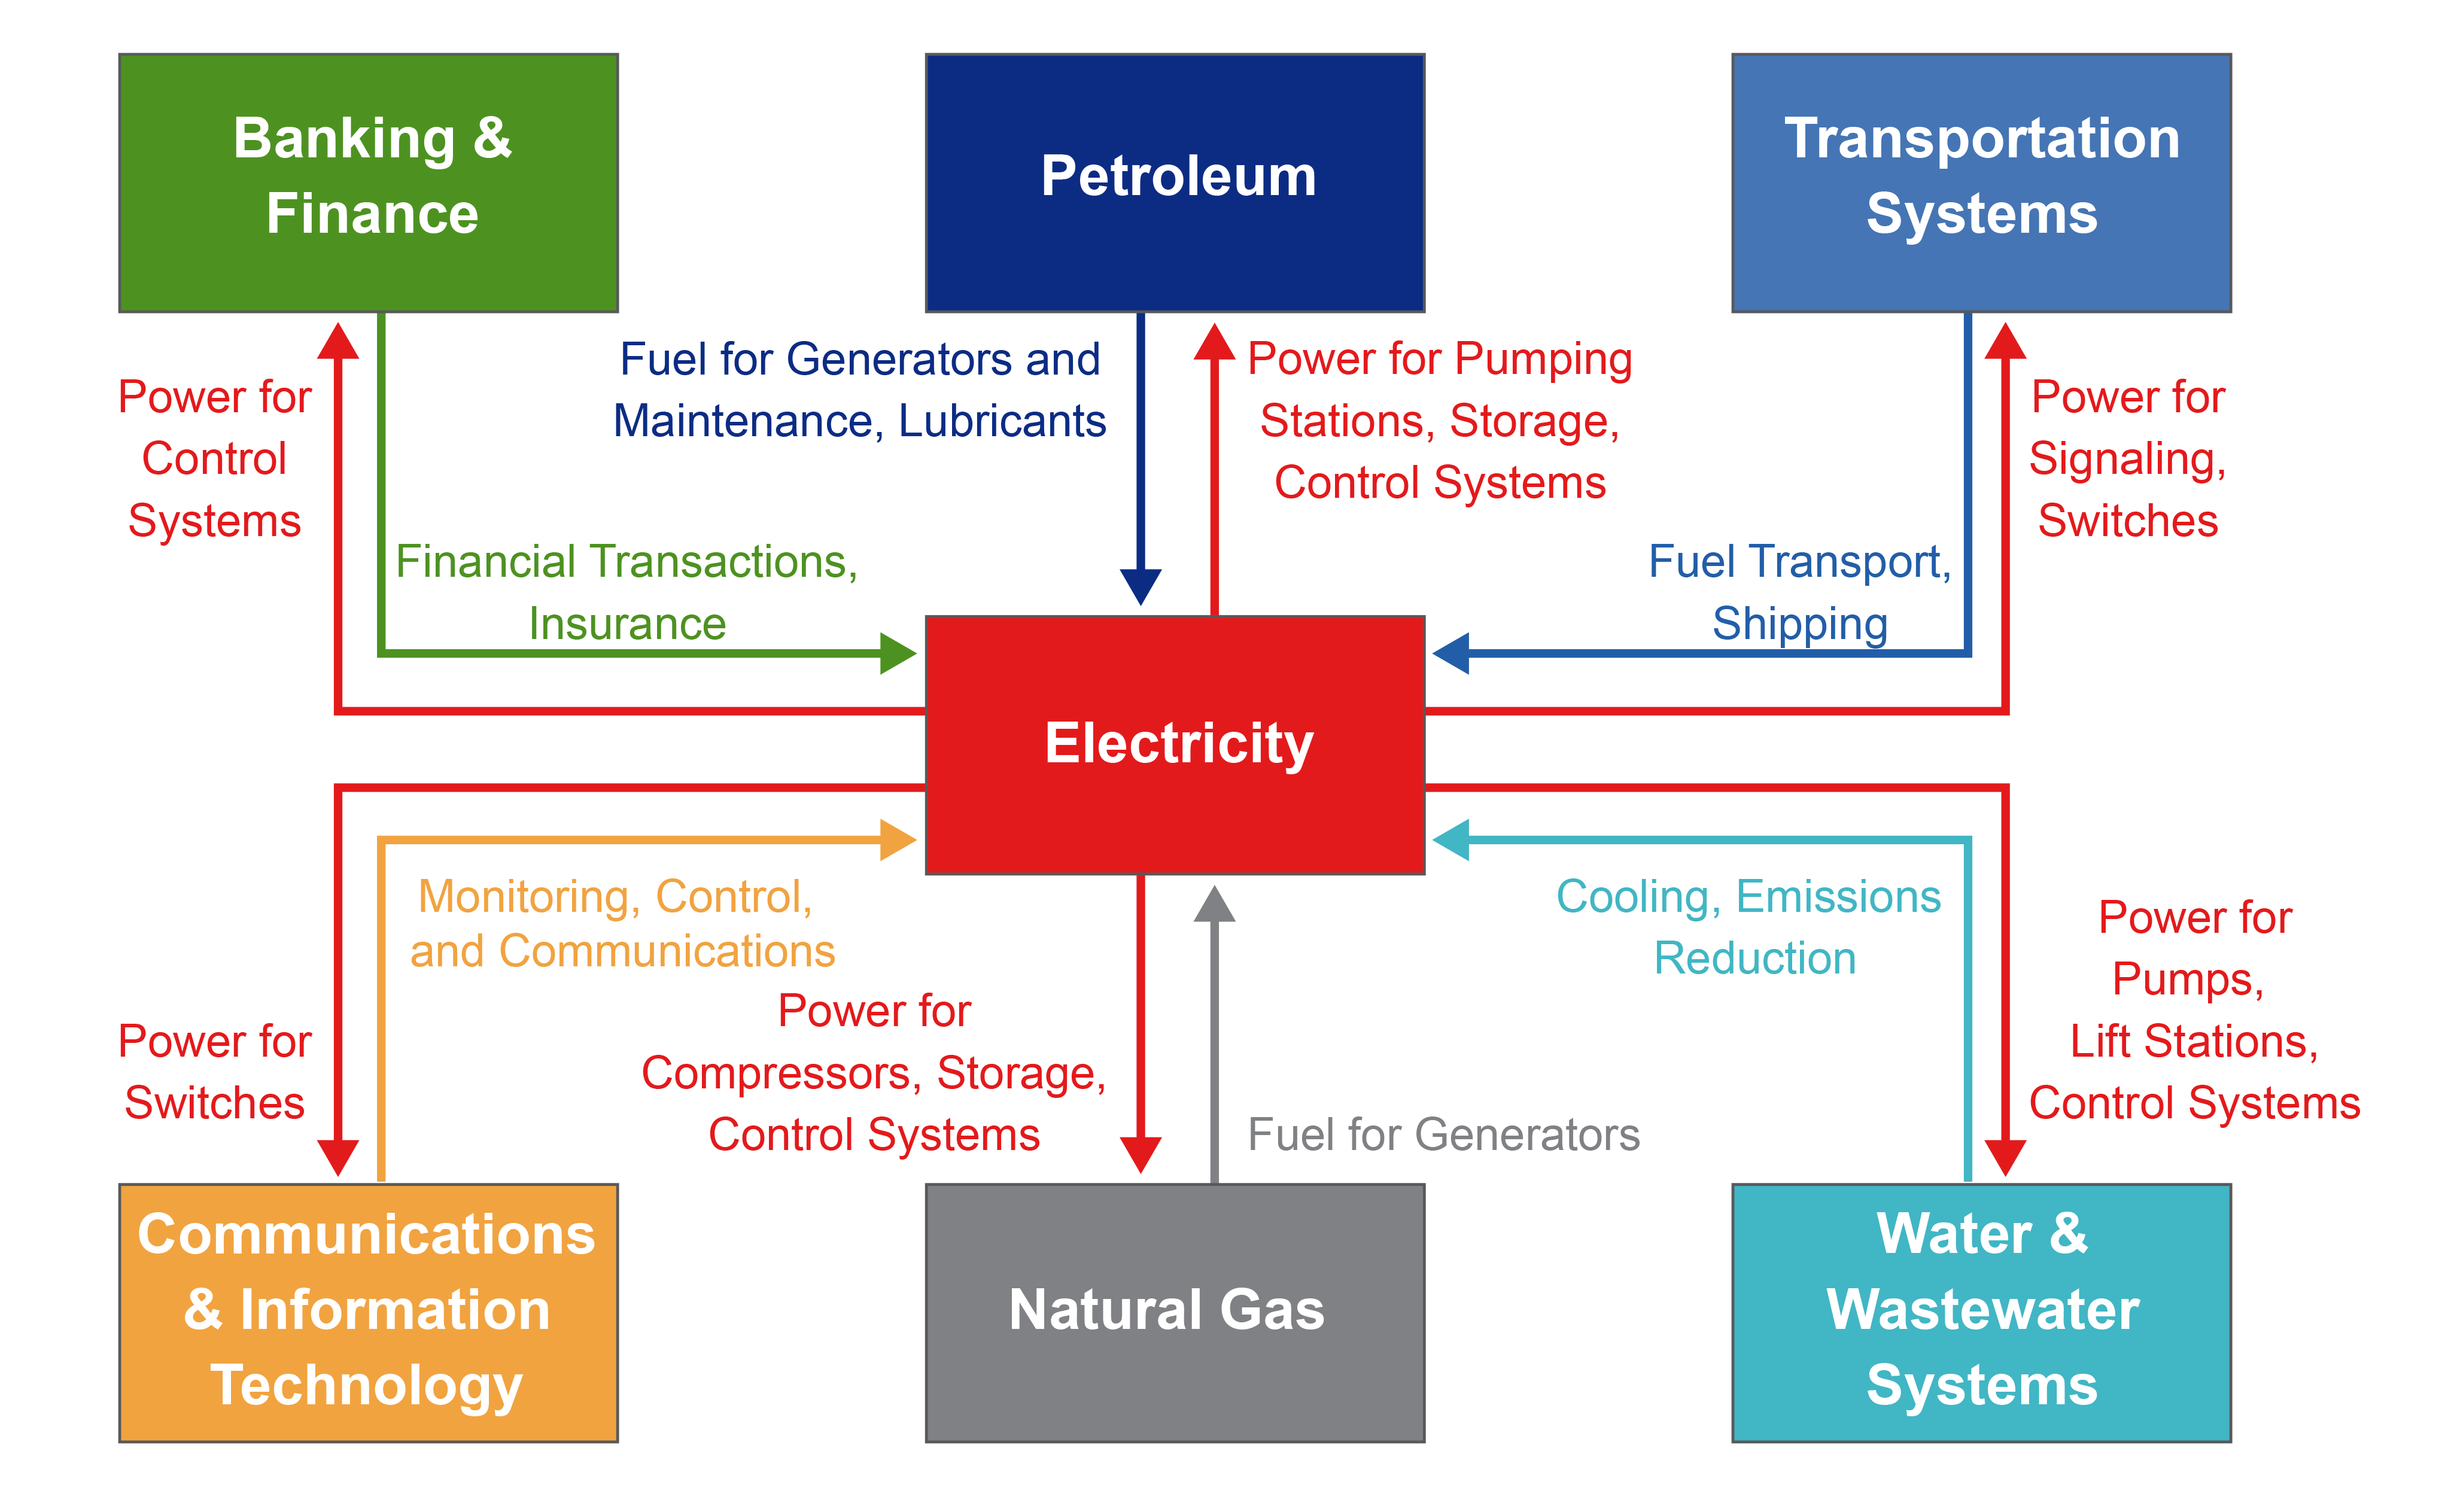 Energy Supply, Delivery, and Demand - Fourth National Climate Assessment